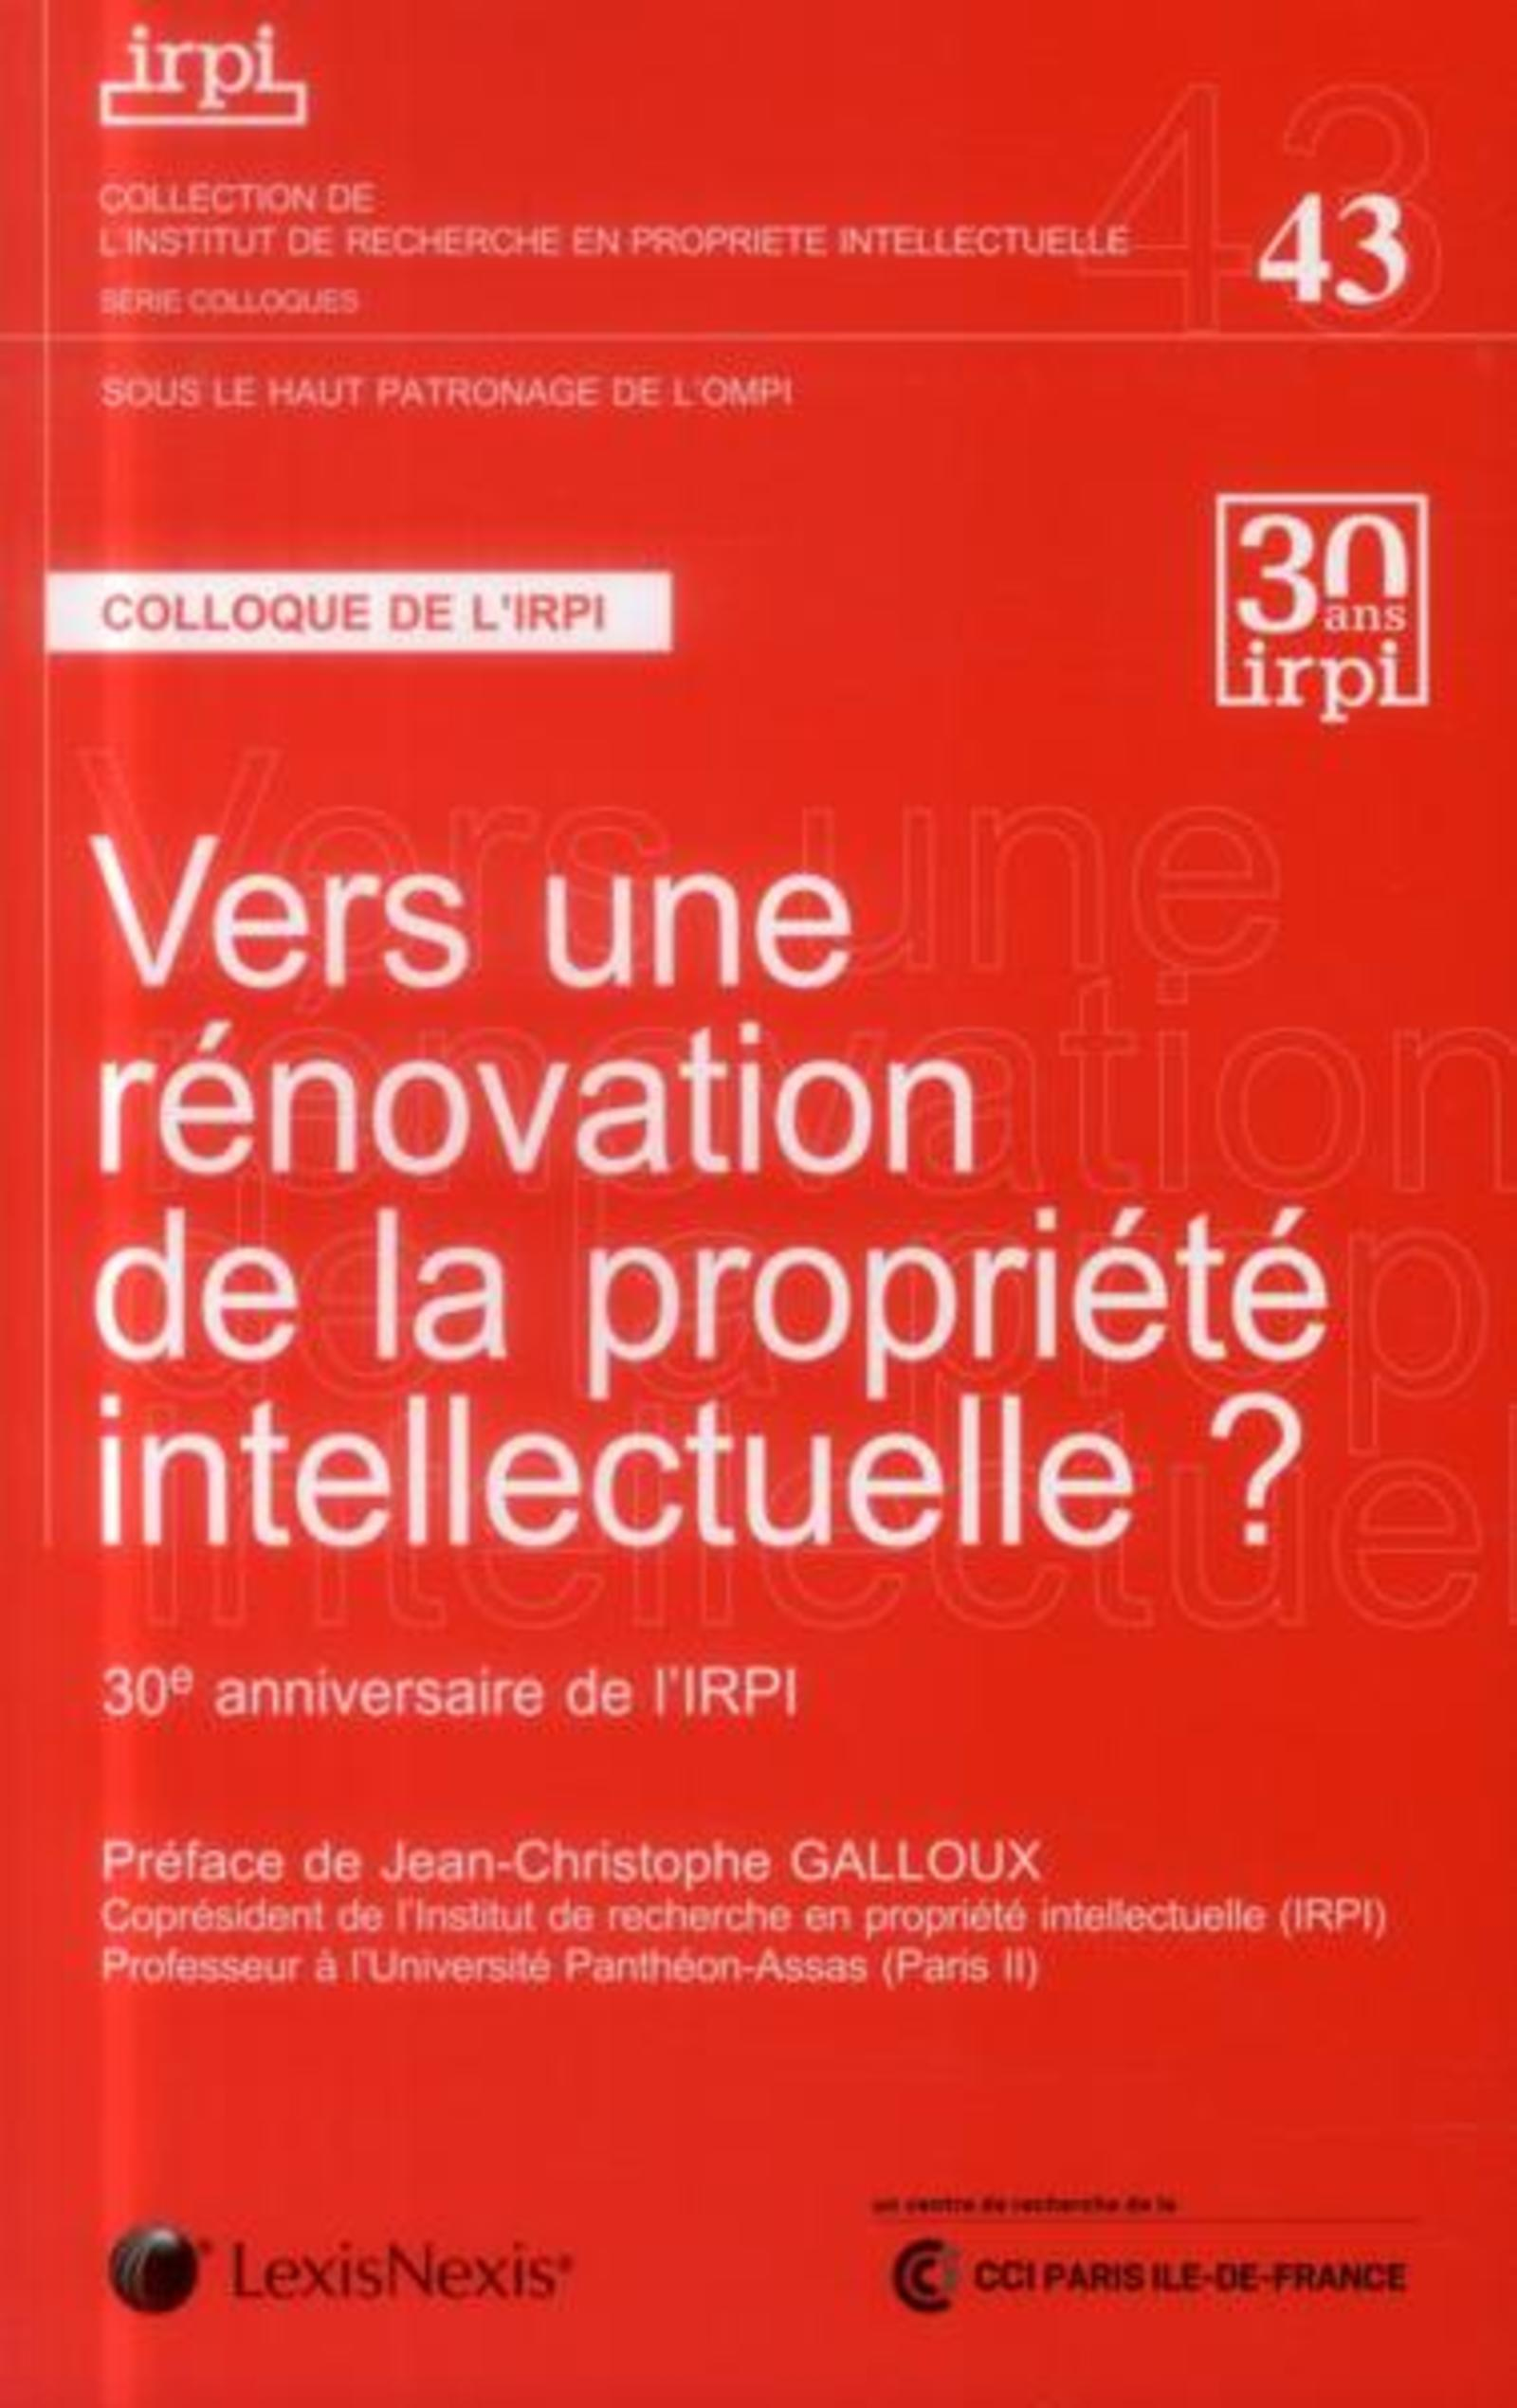 VERS UNE RENOVATION DE LA PROPRIETE INTELLECTUELLE - TOME 43 - ACTES DU COLLOQUE 28 NOVEMBRE 2012.